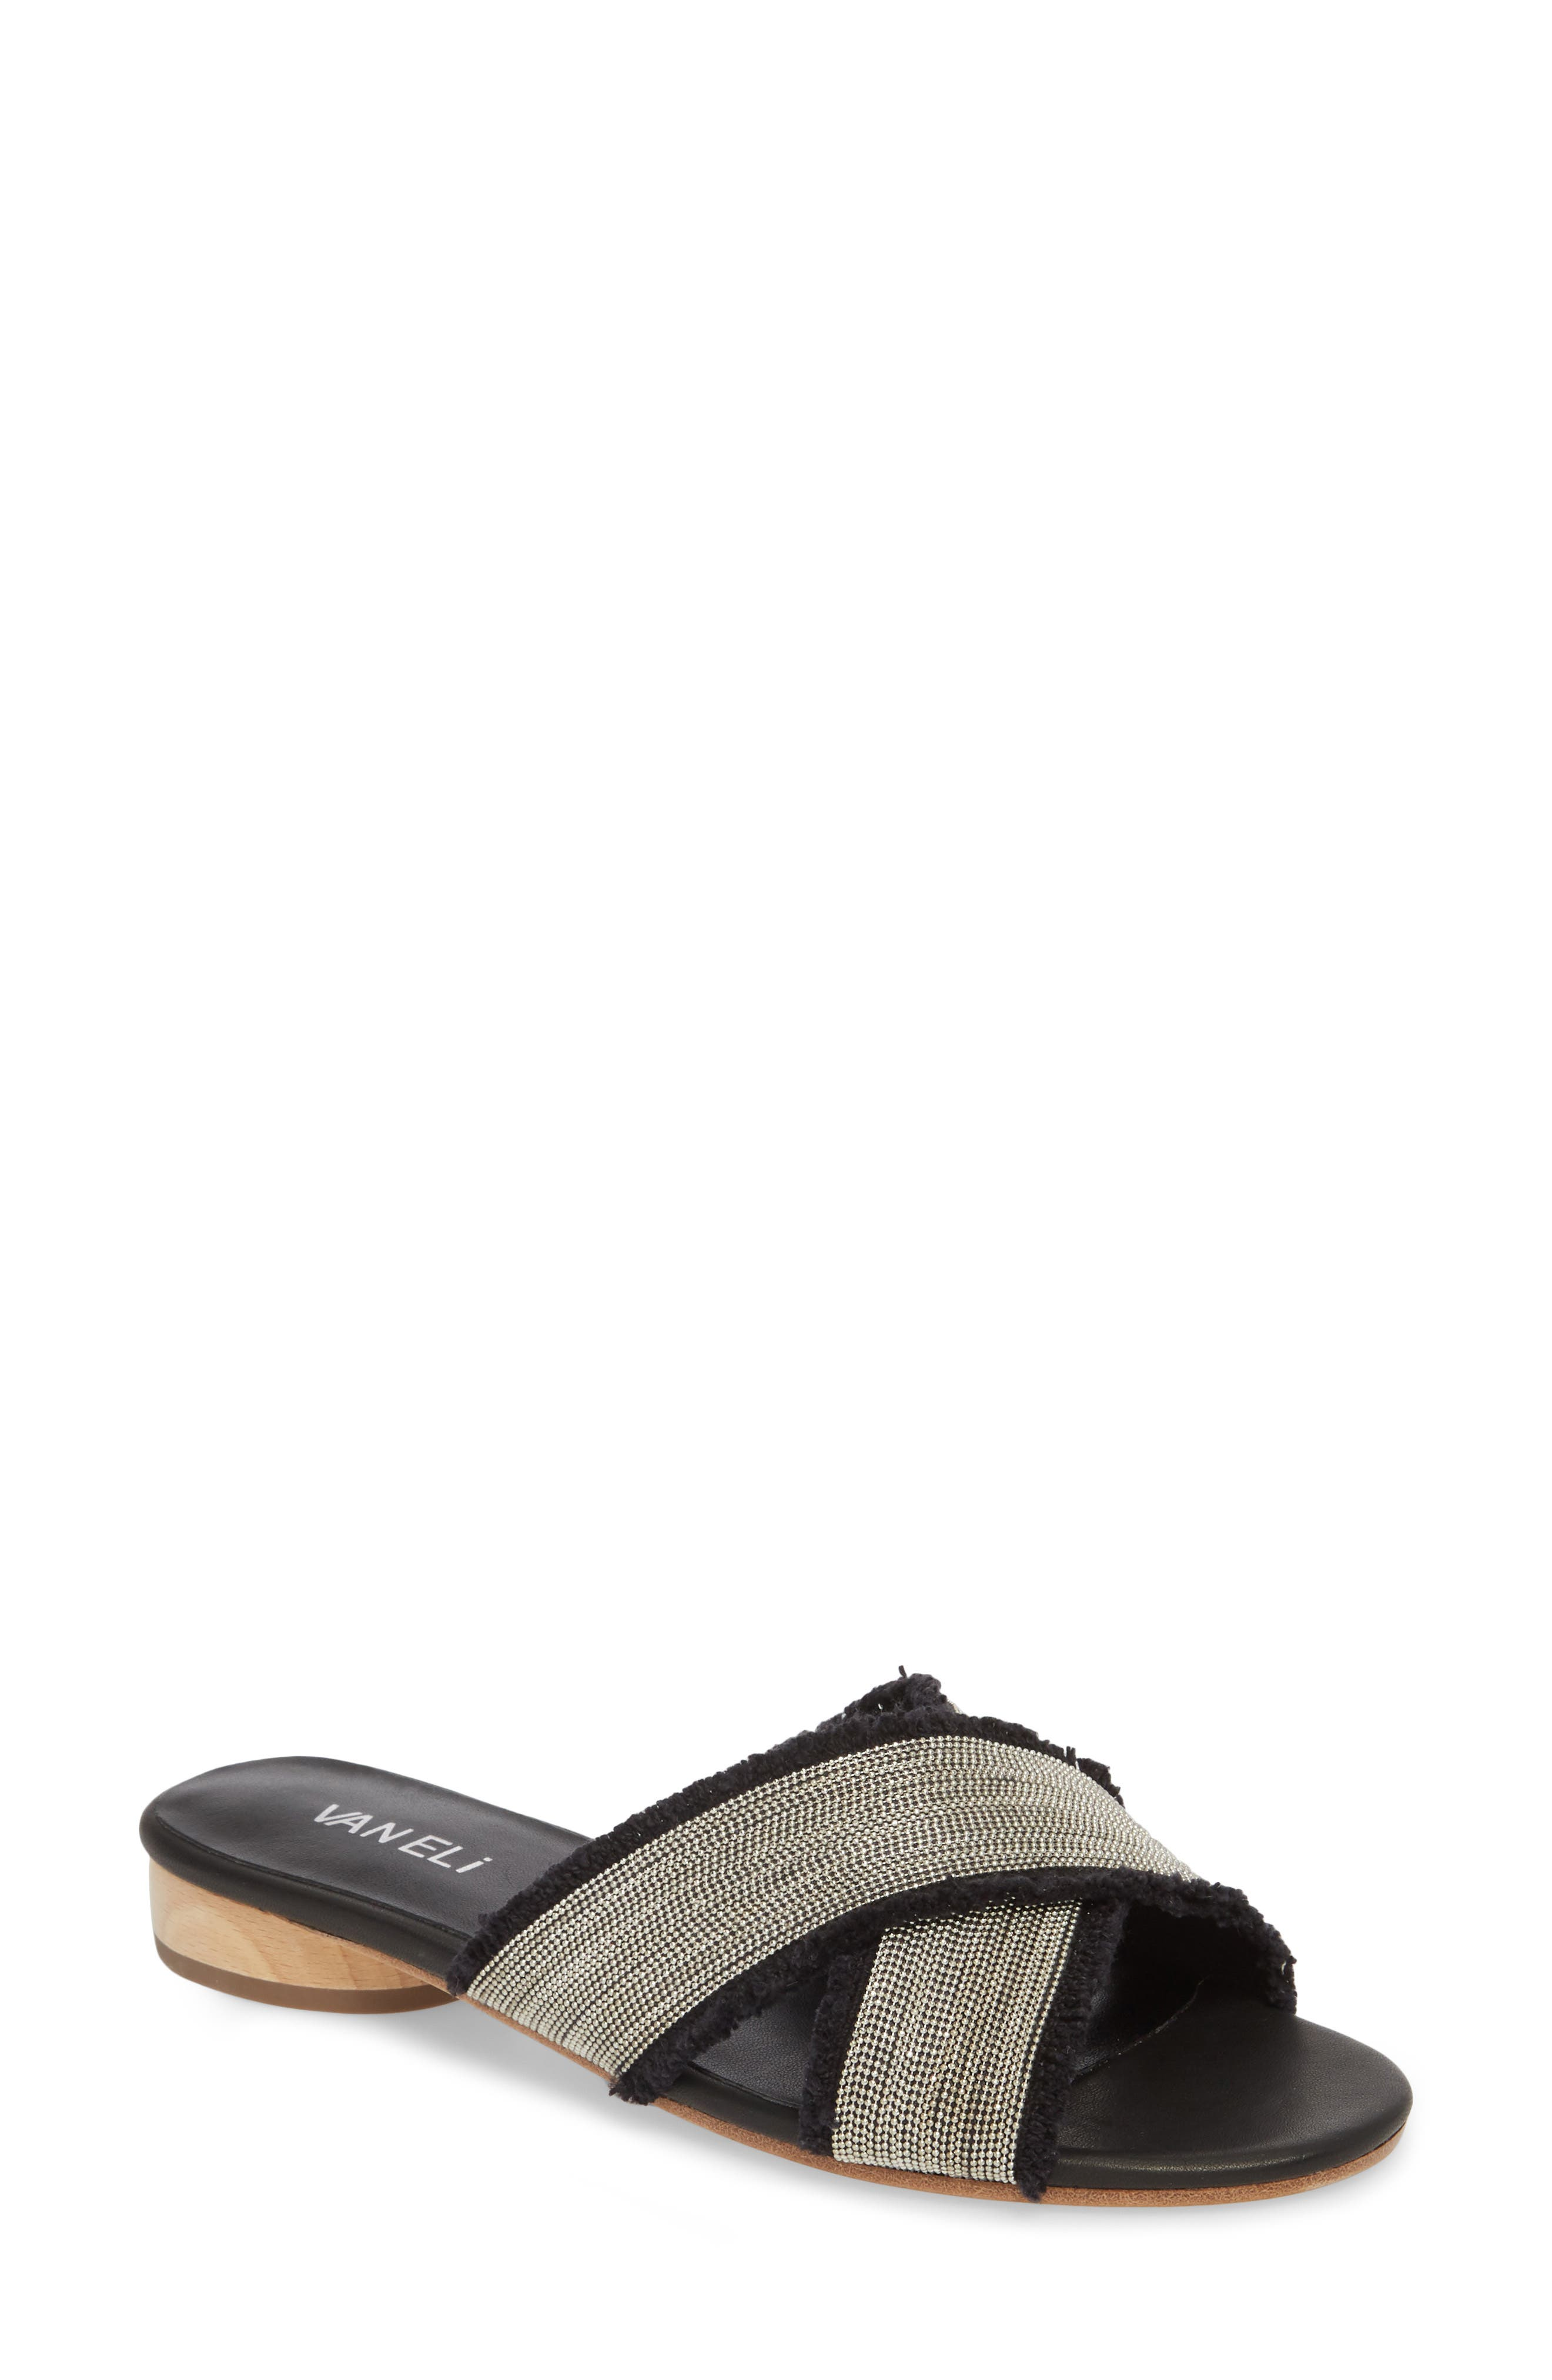 Vaneli Baret Embellished Cross Strap Slide Sandal, Black